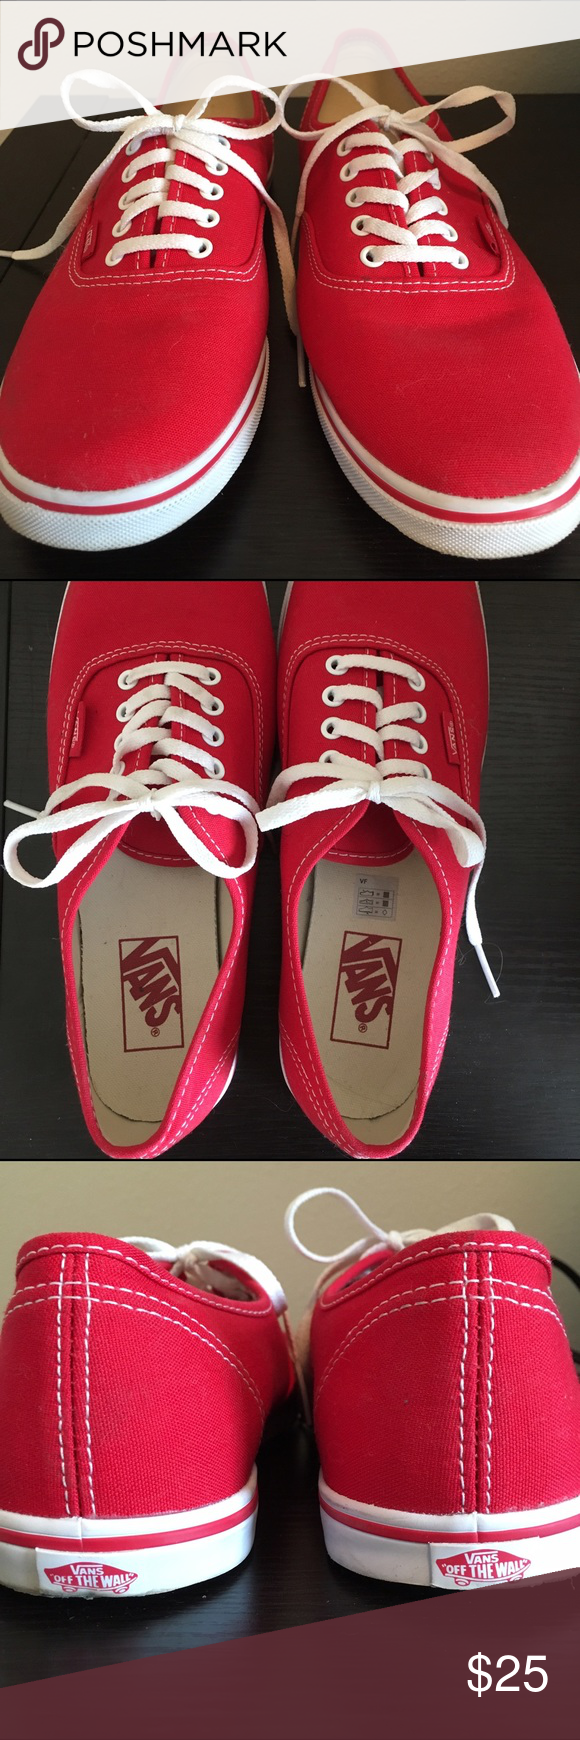 Red vans sneakers sz10 Brand new, never worn, red vans lace up. These were given to me as a gift and I'm just not a sneaker person. Looking to get rid of them quickly! Vans Shoes Sneakers